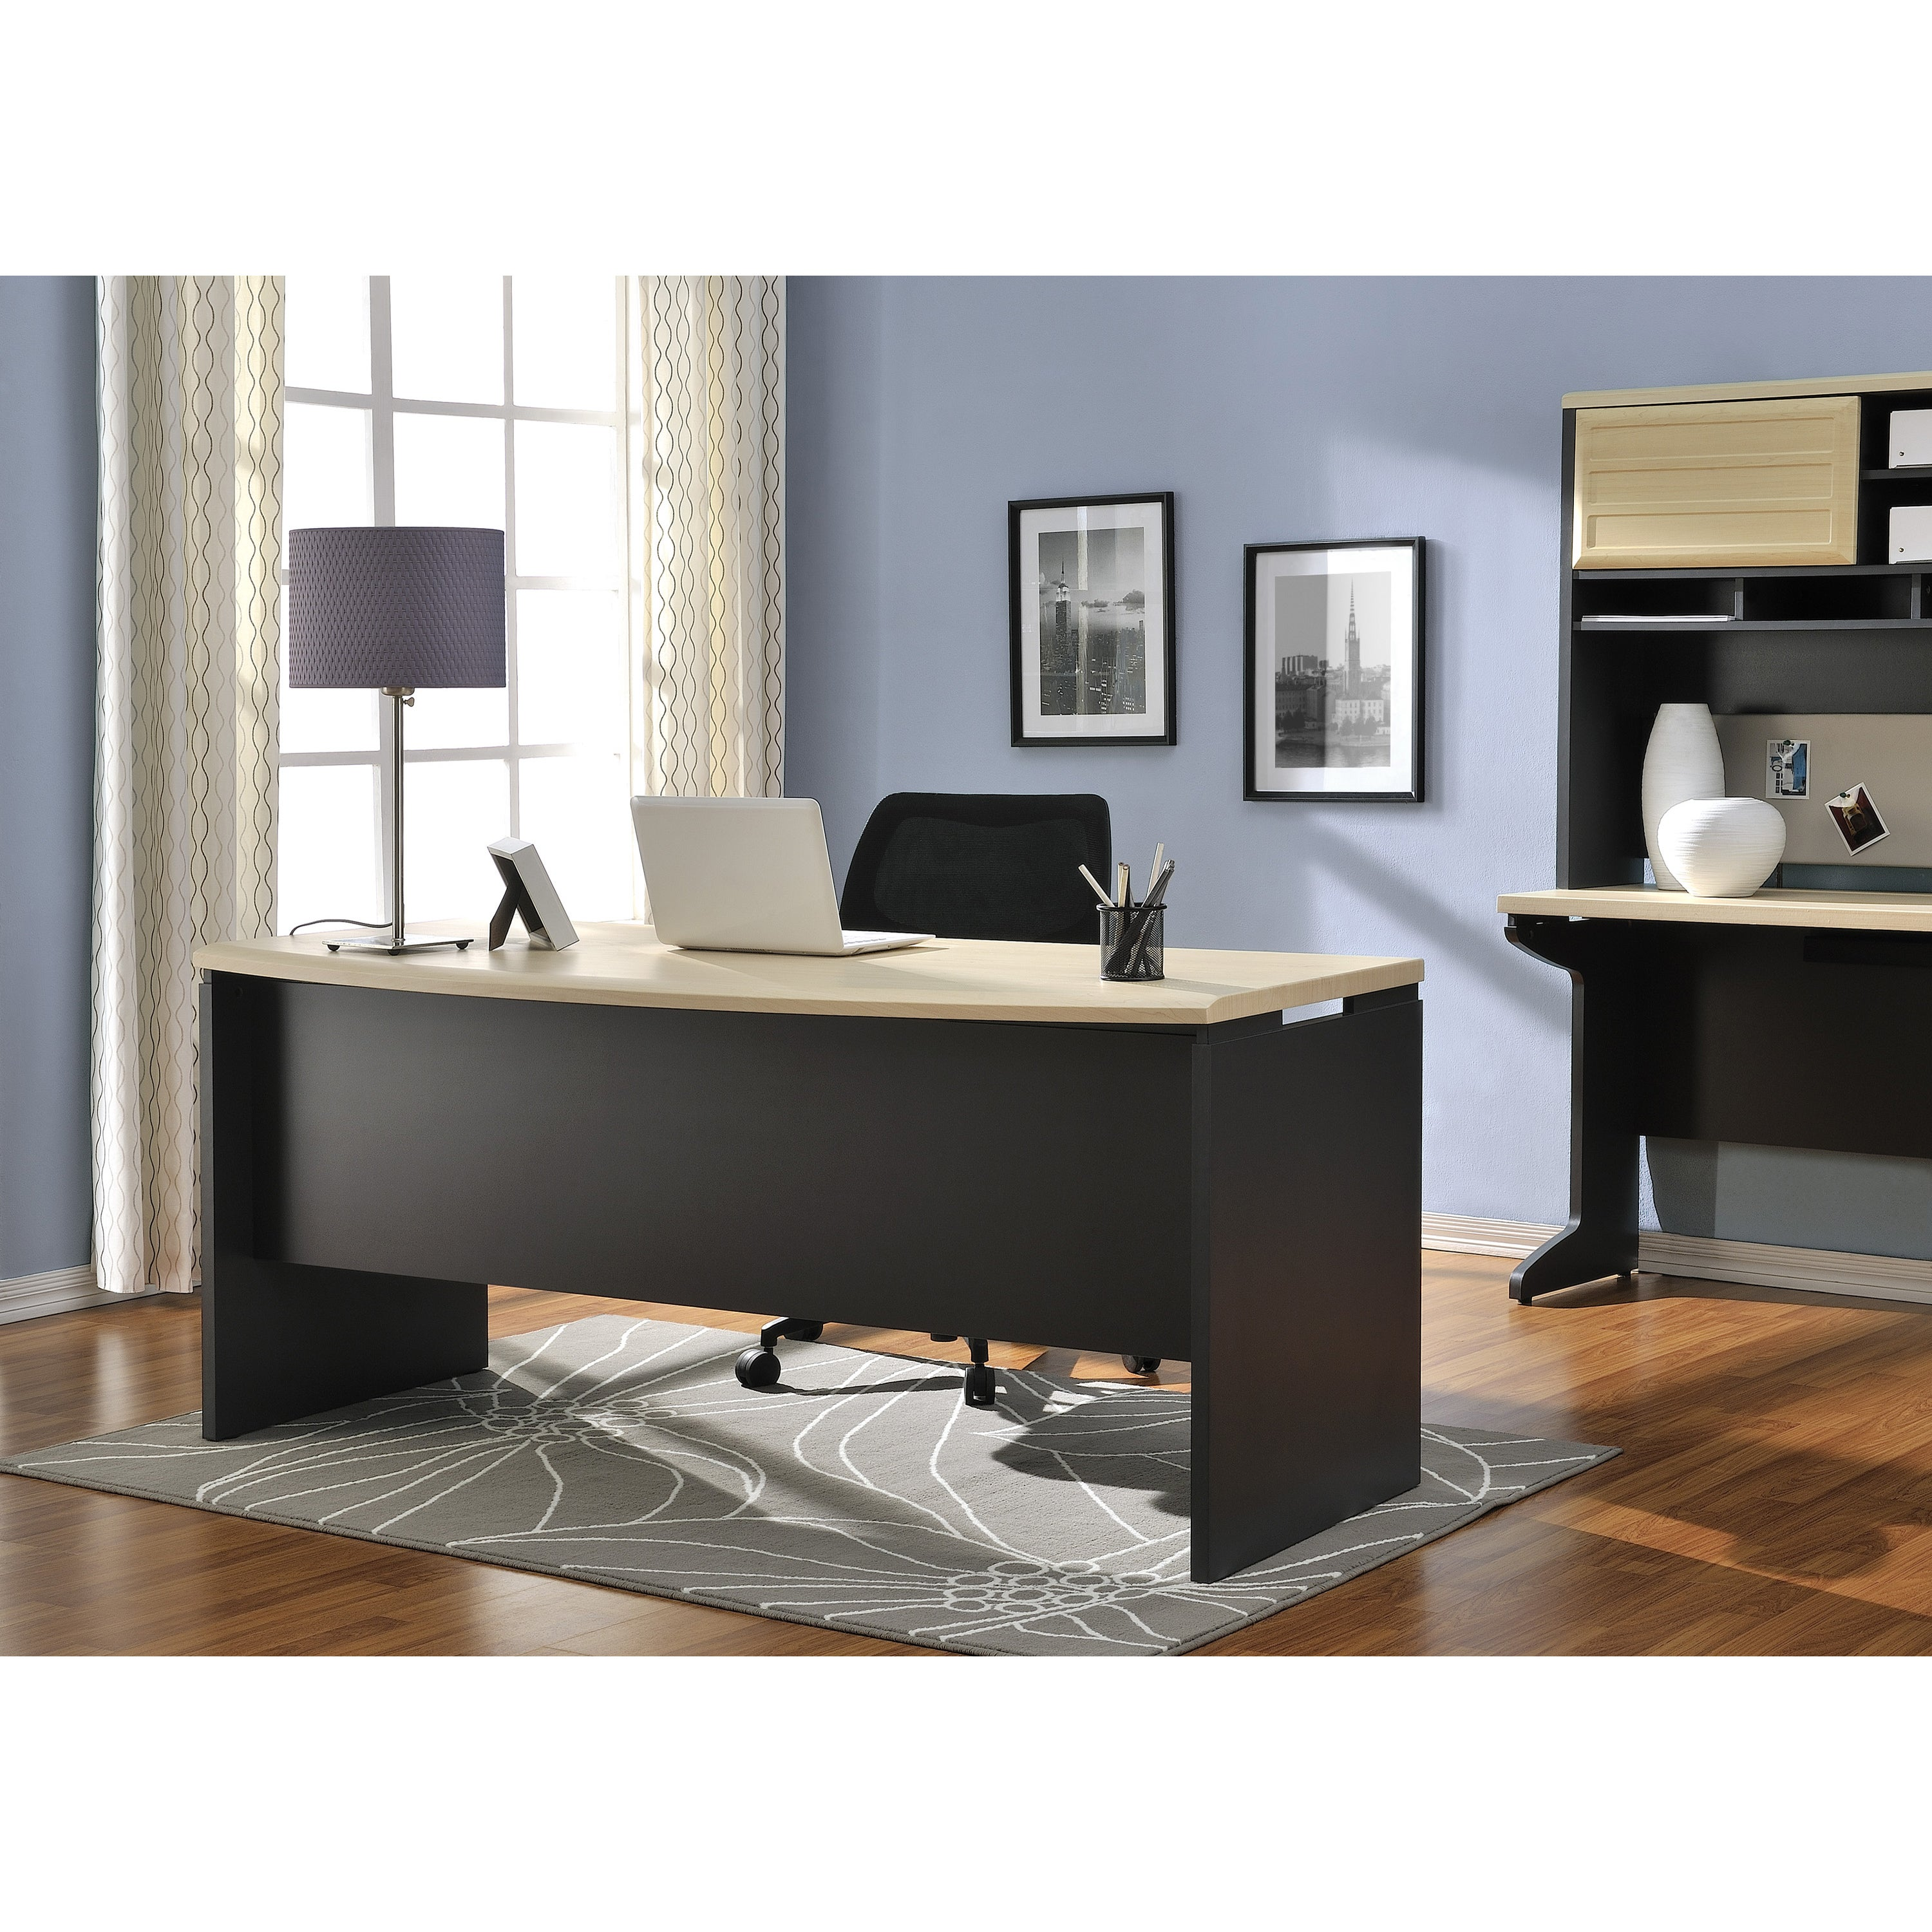 Details about Executive Office Desk Computer Business Furniture Large